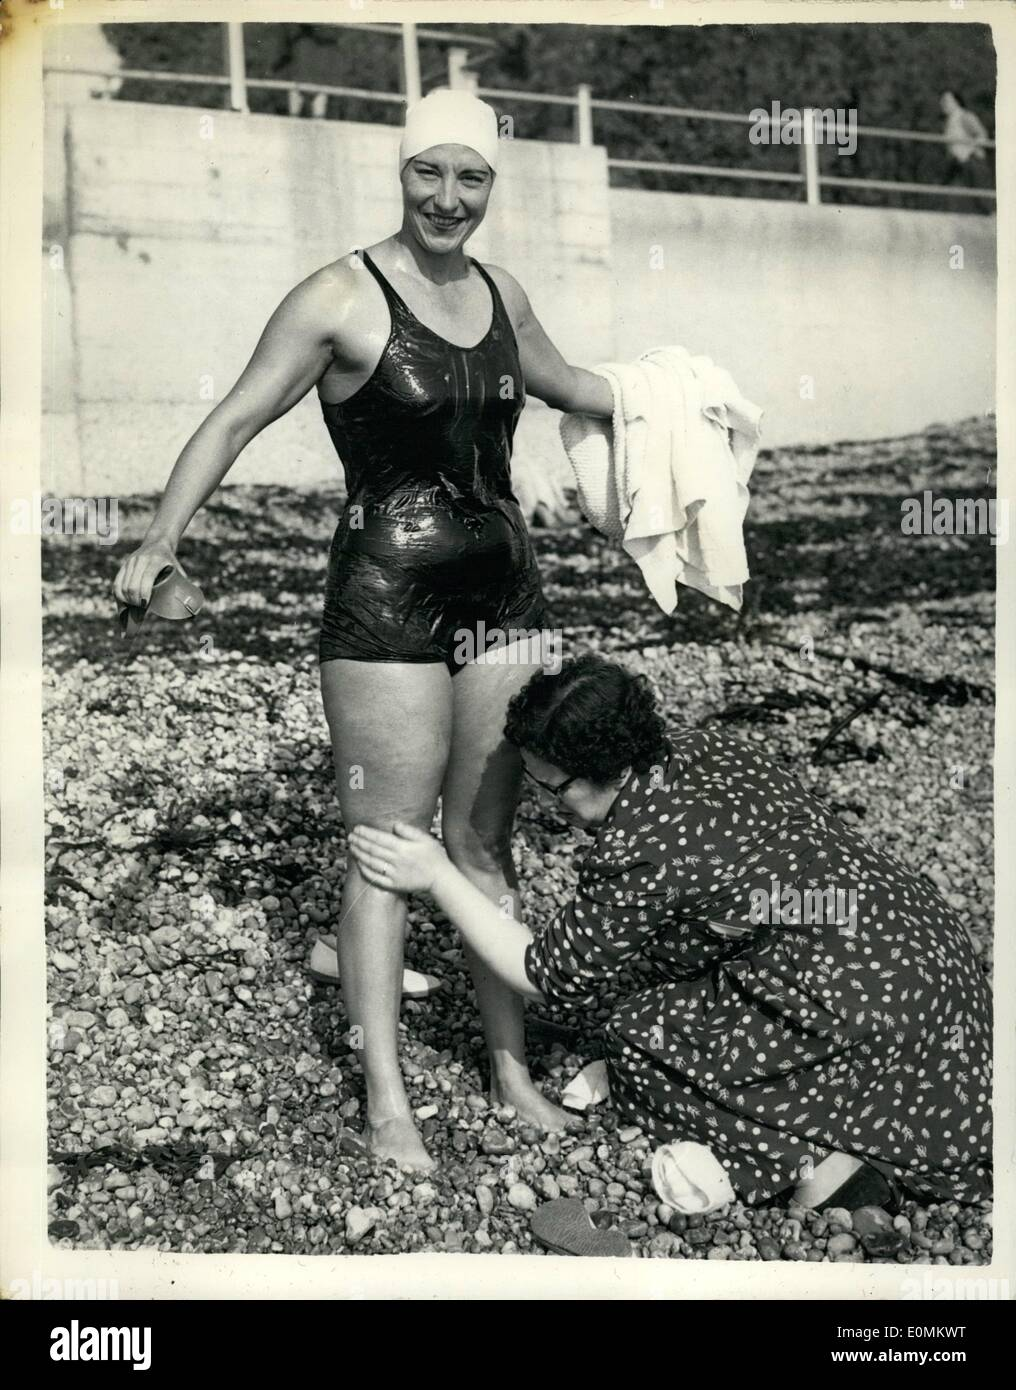 Oct. 10, 1955 - Florence Chadwick Tries Again For Channel ''Double'' Fourth Attempt This Year: Miss Florence Chadwick, the 35 year old Californian swimmer entered the water at St. Margaret's Bay, near Dover at 10-24 a.m. today in her attempt at a non-stop double crossing of the Channel. This is her fourth attempt this year. Her first aim is to beat the England - France record of 14 hrs. 6 min. set up six weeks ago by Bill Pickering of Bloxwich. Photo shows Miss Florence Chadwick is prepared for the swim at St. Margaret's Bay, today. - Stock Image